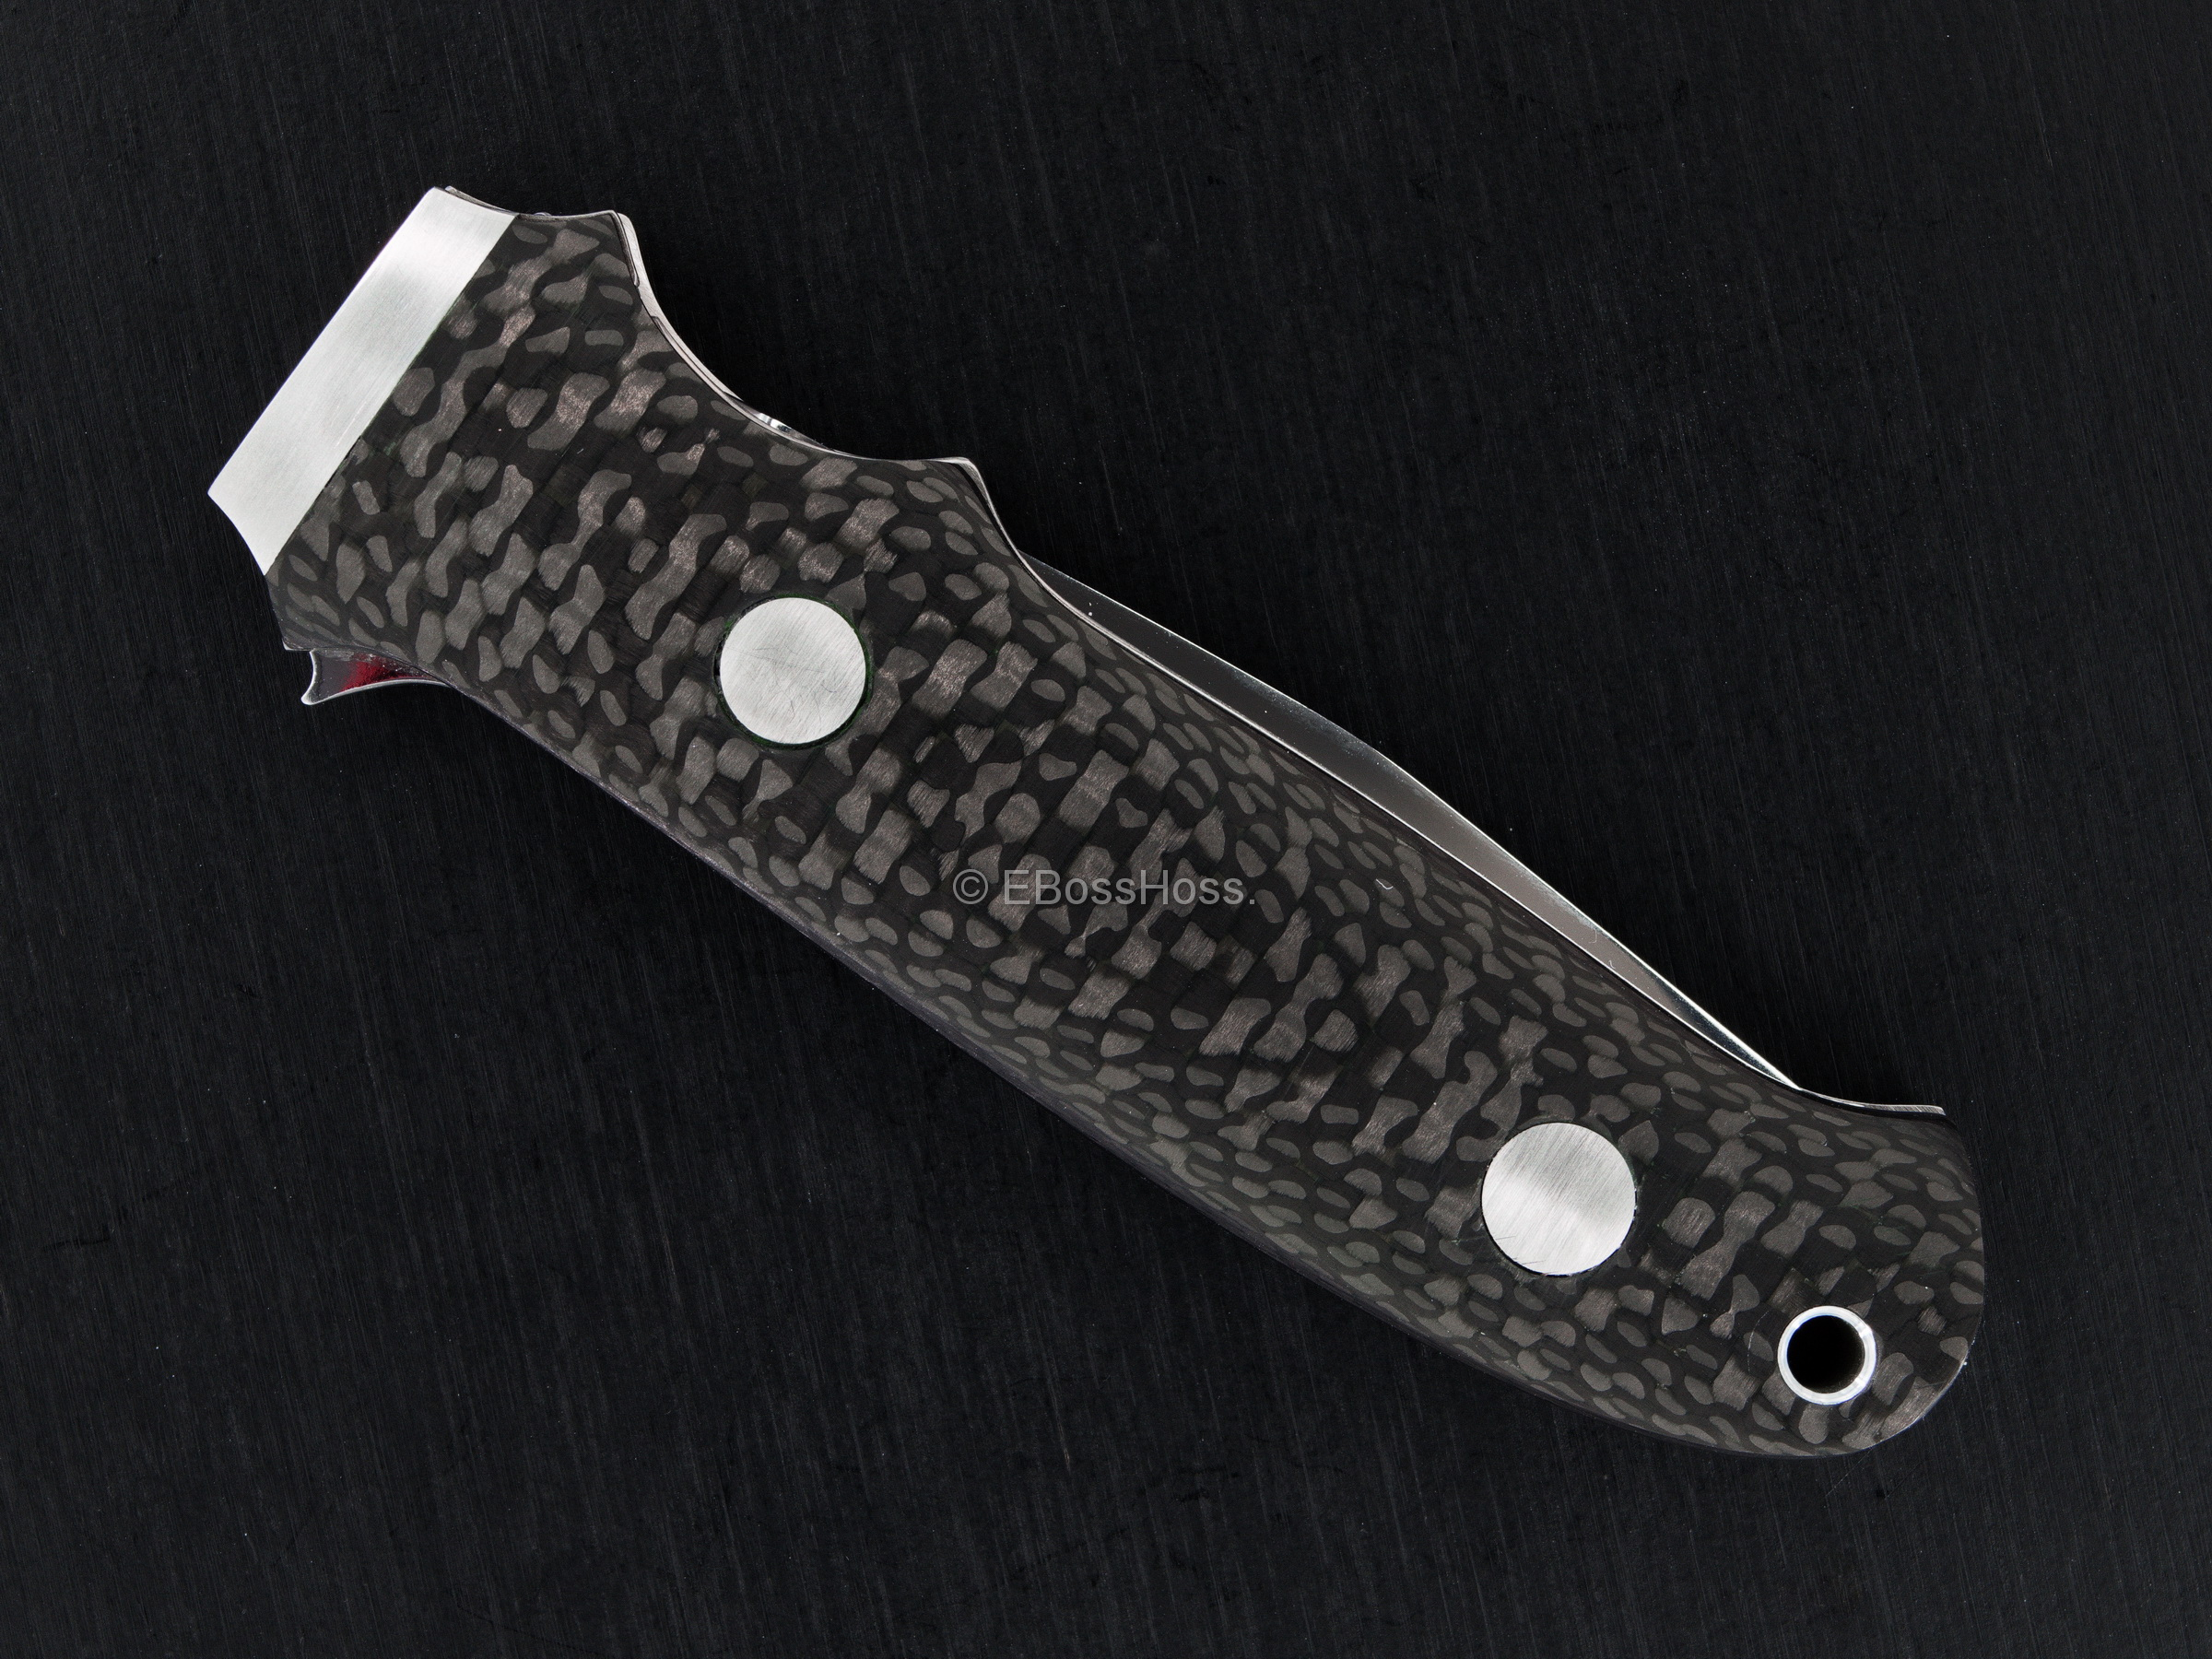 Kansei Matsuno Custom New York Special Flipper